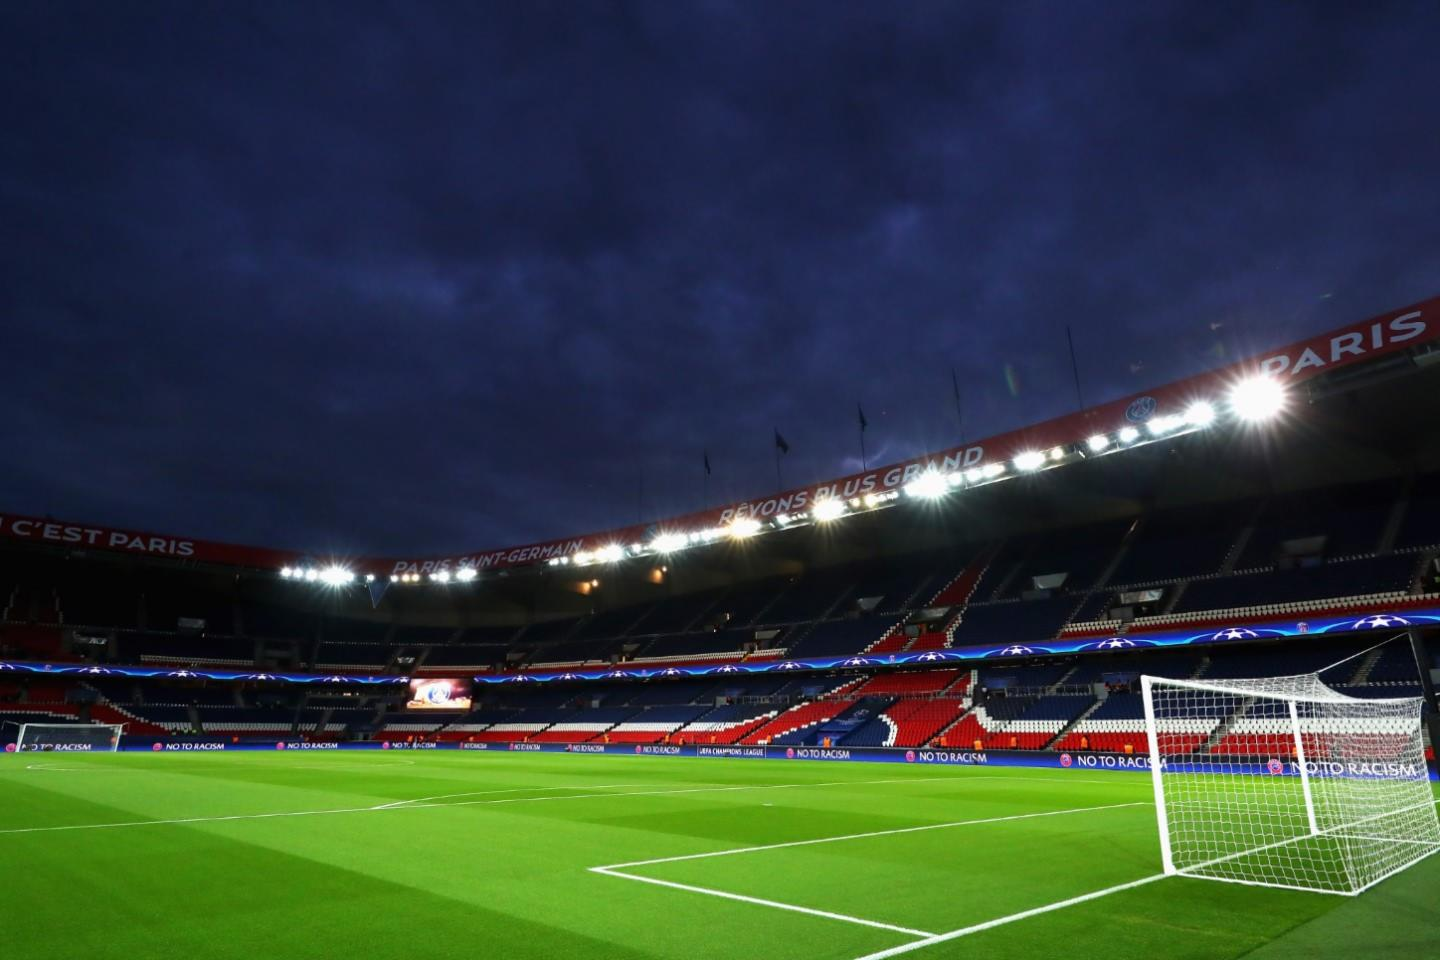 paris st germain stadion